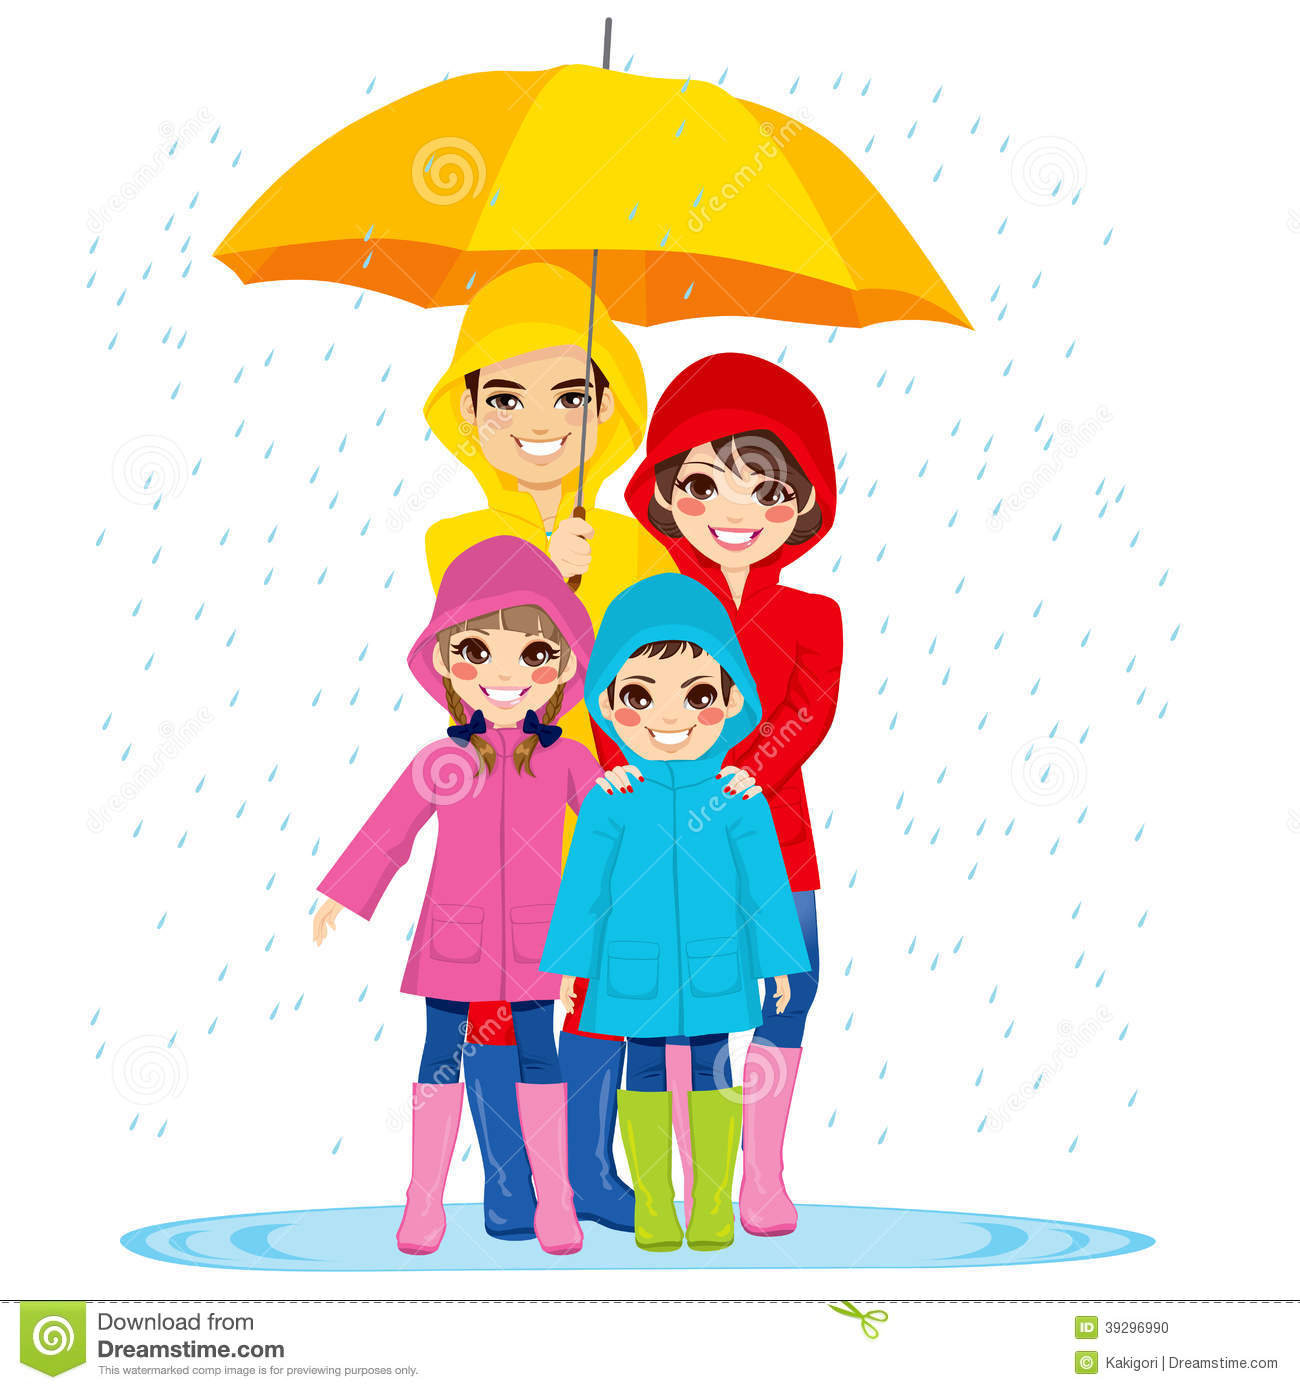 Happy family with raincoats under big umbrella on rainy day.